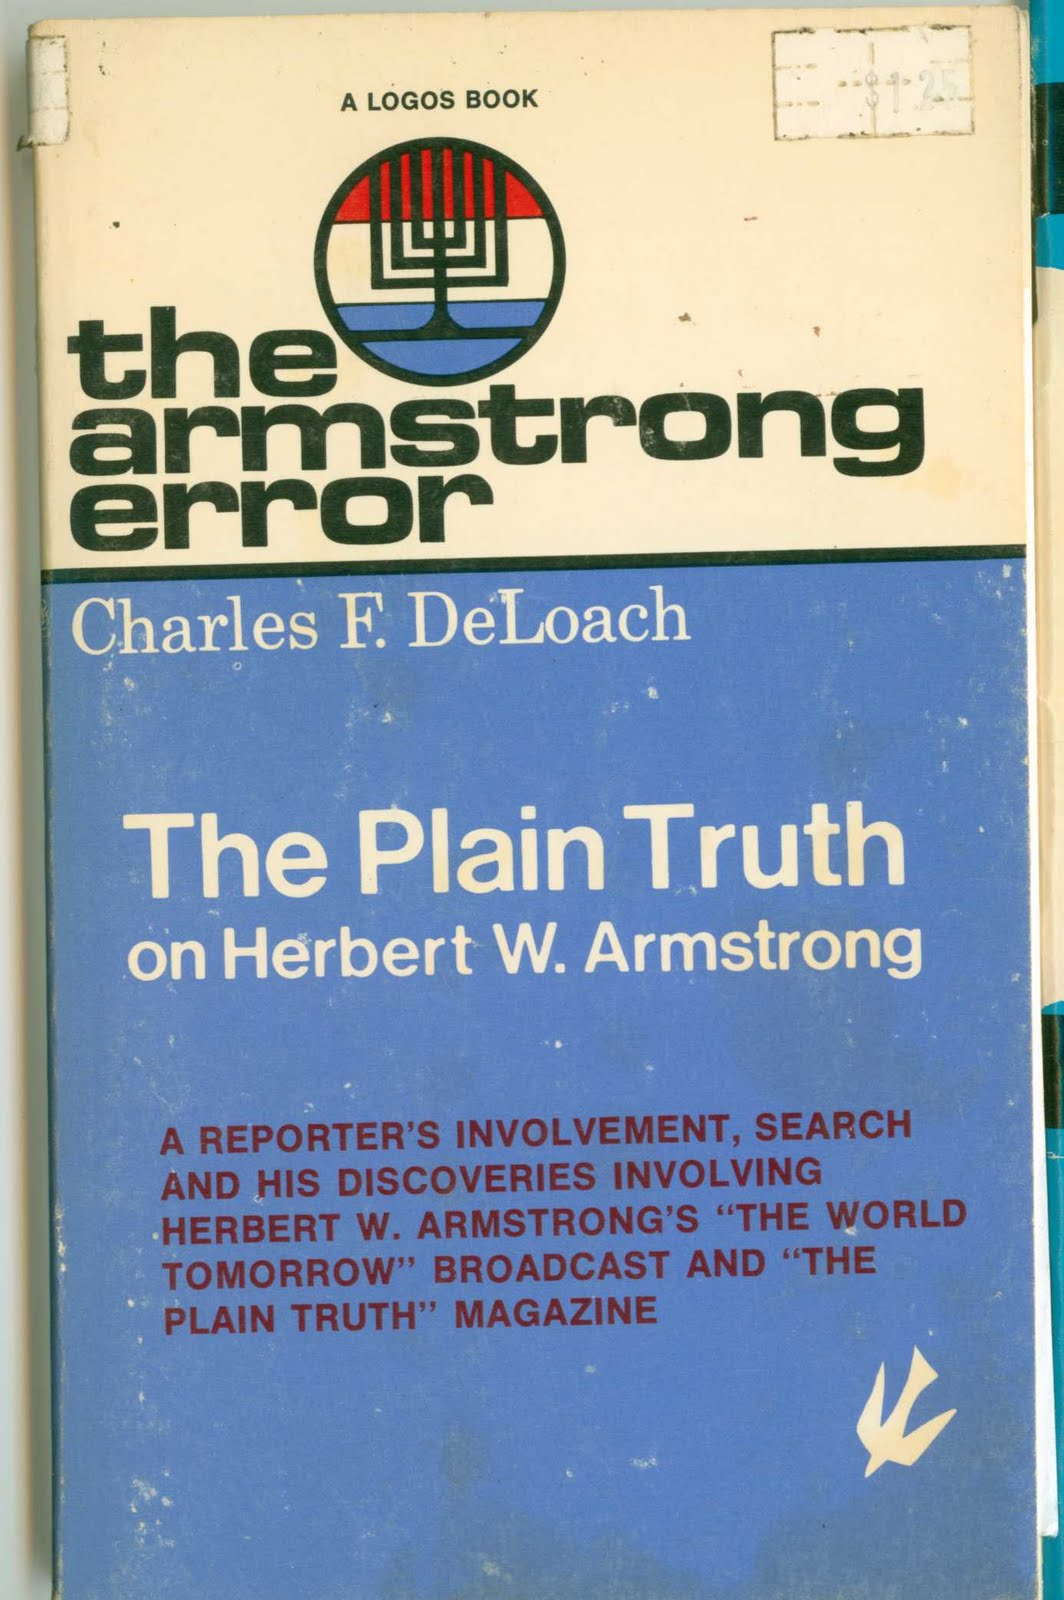 The Armstrong Error (The Plain Truth on Herbert W. Armstrong) Charles F. DeLoach